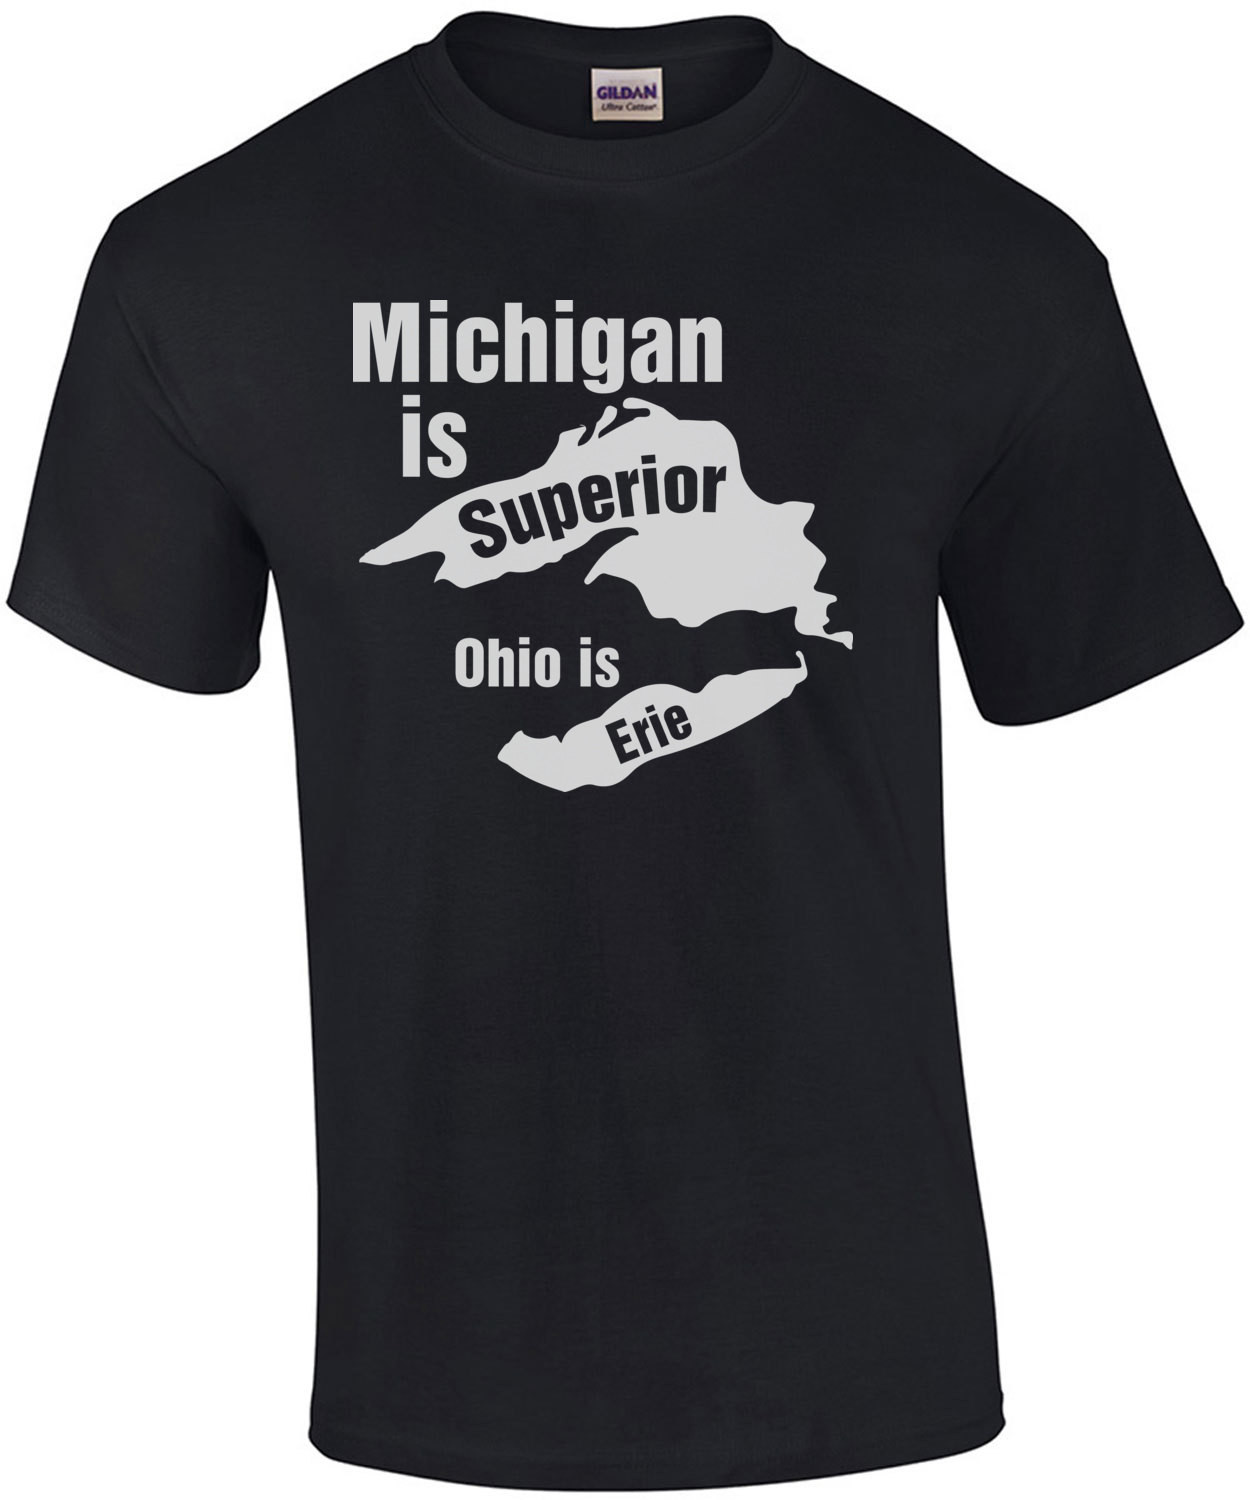 Michigan is superior Ohio is Erie - Michigan T-Shirt